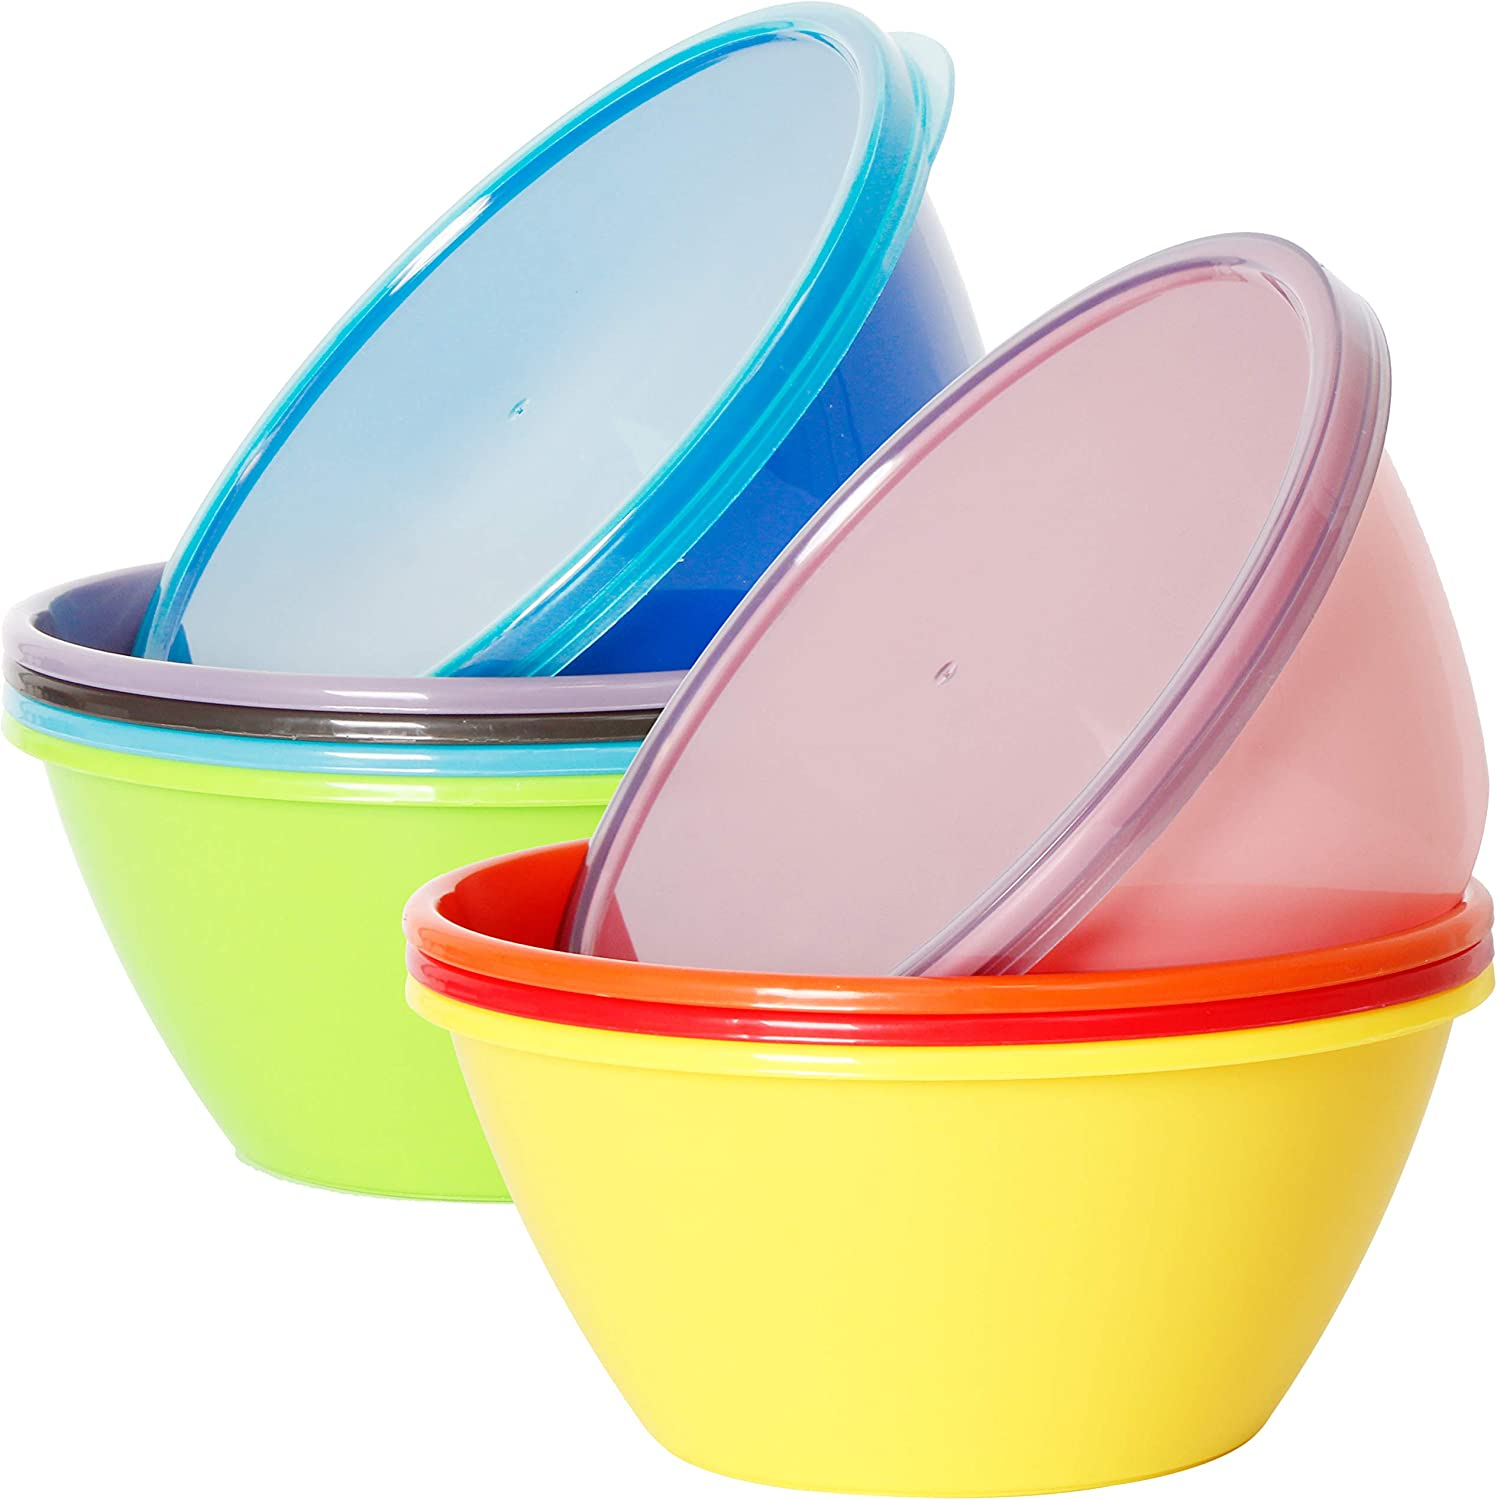 Youngever 22 Ounce Plastic Bowls with Lids, Cereal Bowls, Soup Bowls, Food Storage Containers, Microwave Safe, Dishwasher Safe, Set of 9 in 9 Assorted Colors